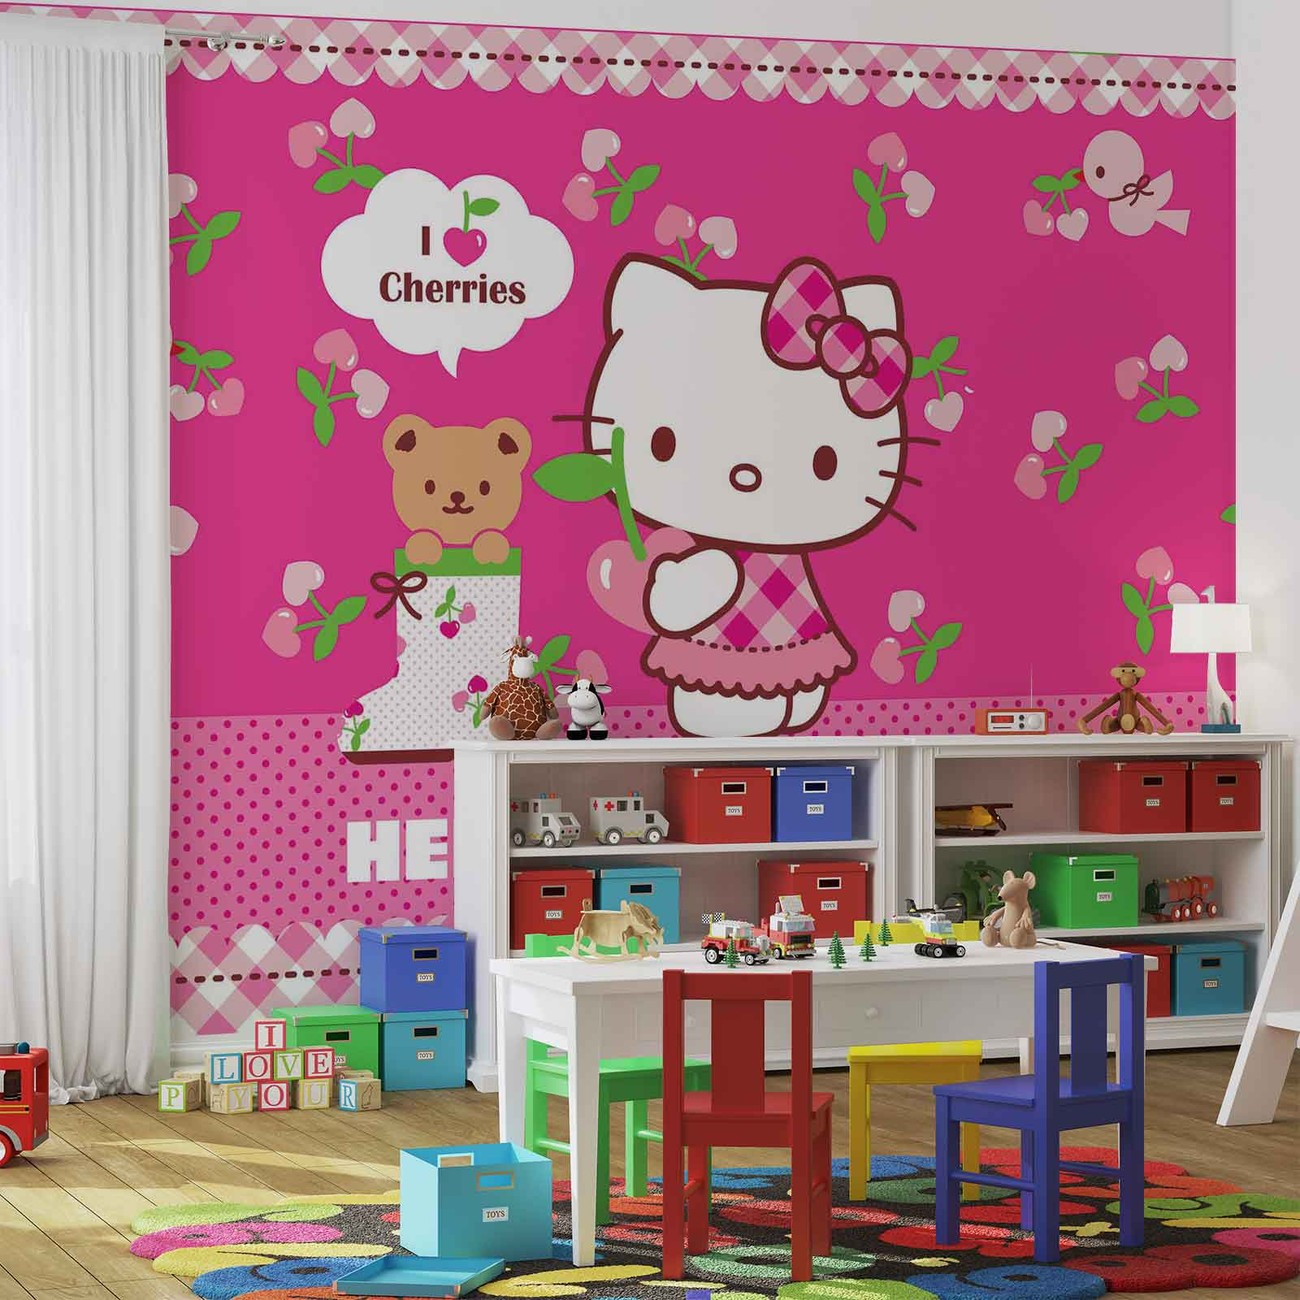 hello kitty wall mural for your home buy at europosters hello kitty wall paper mural buy at europosters